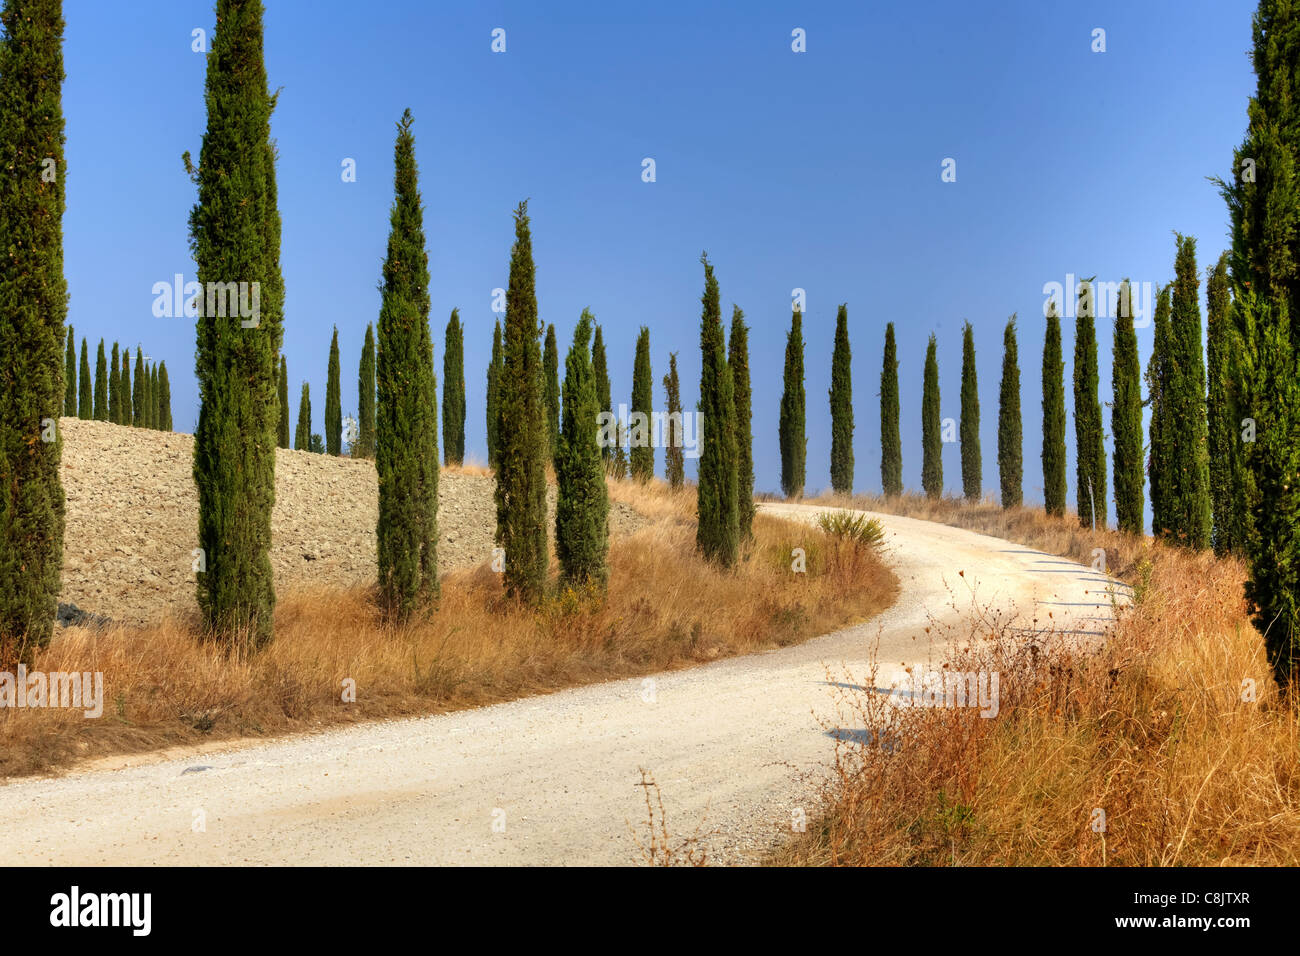 an avenue with cypress trees - Stock Image